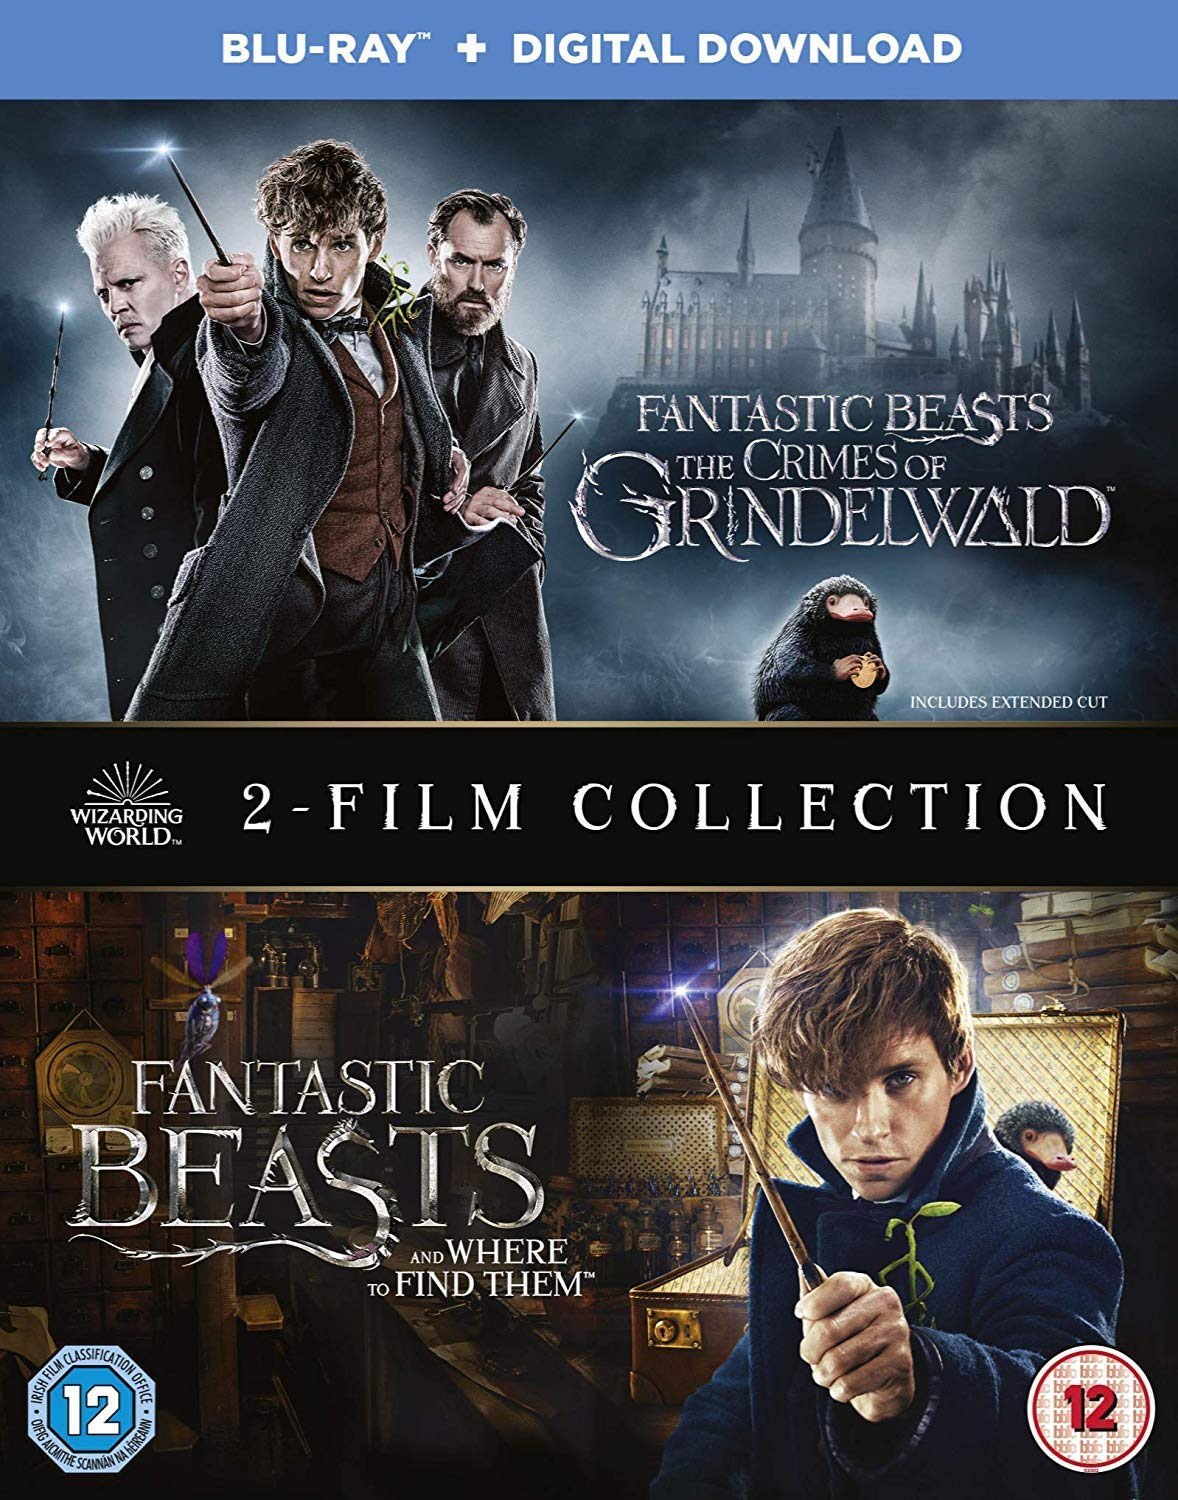 Fantastic Beasts 2 Movies Fantastic Beasts Where To Find Them Fantastic Beasts The Crimes Of Grindelwald Blu Ray Bonus Disc Digital Download 3 Disc Slipcase Fully Packaged Import